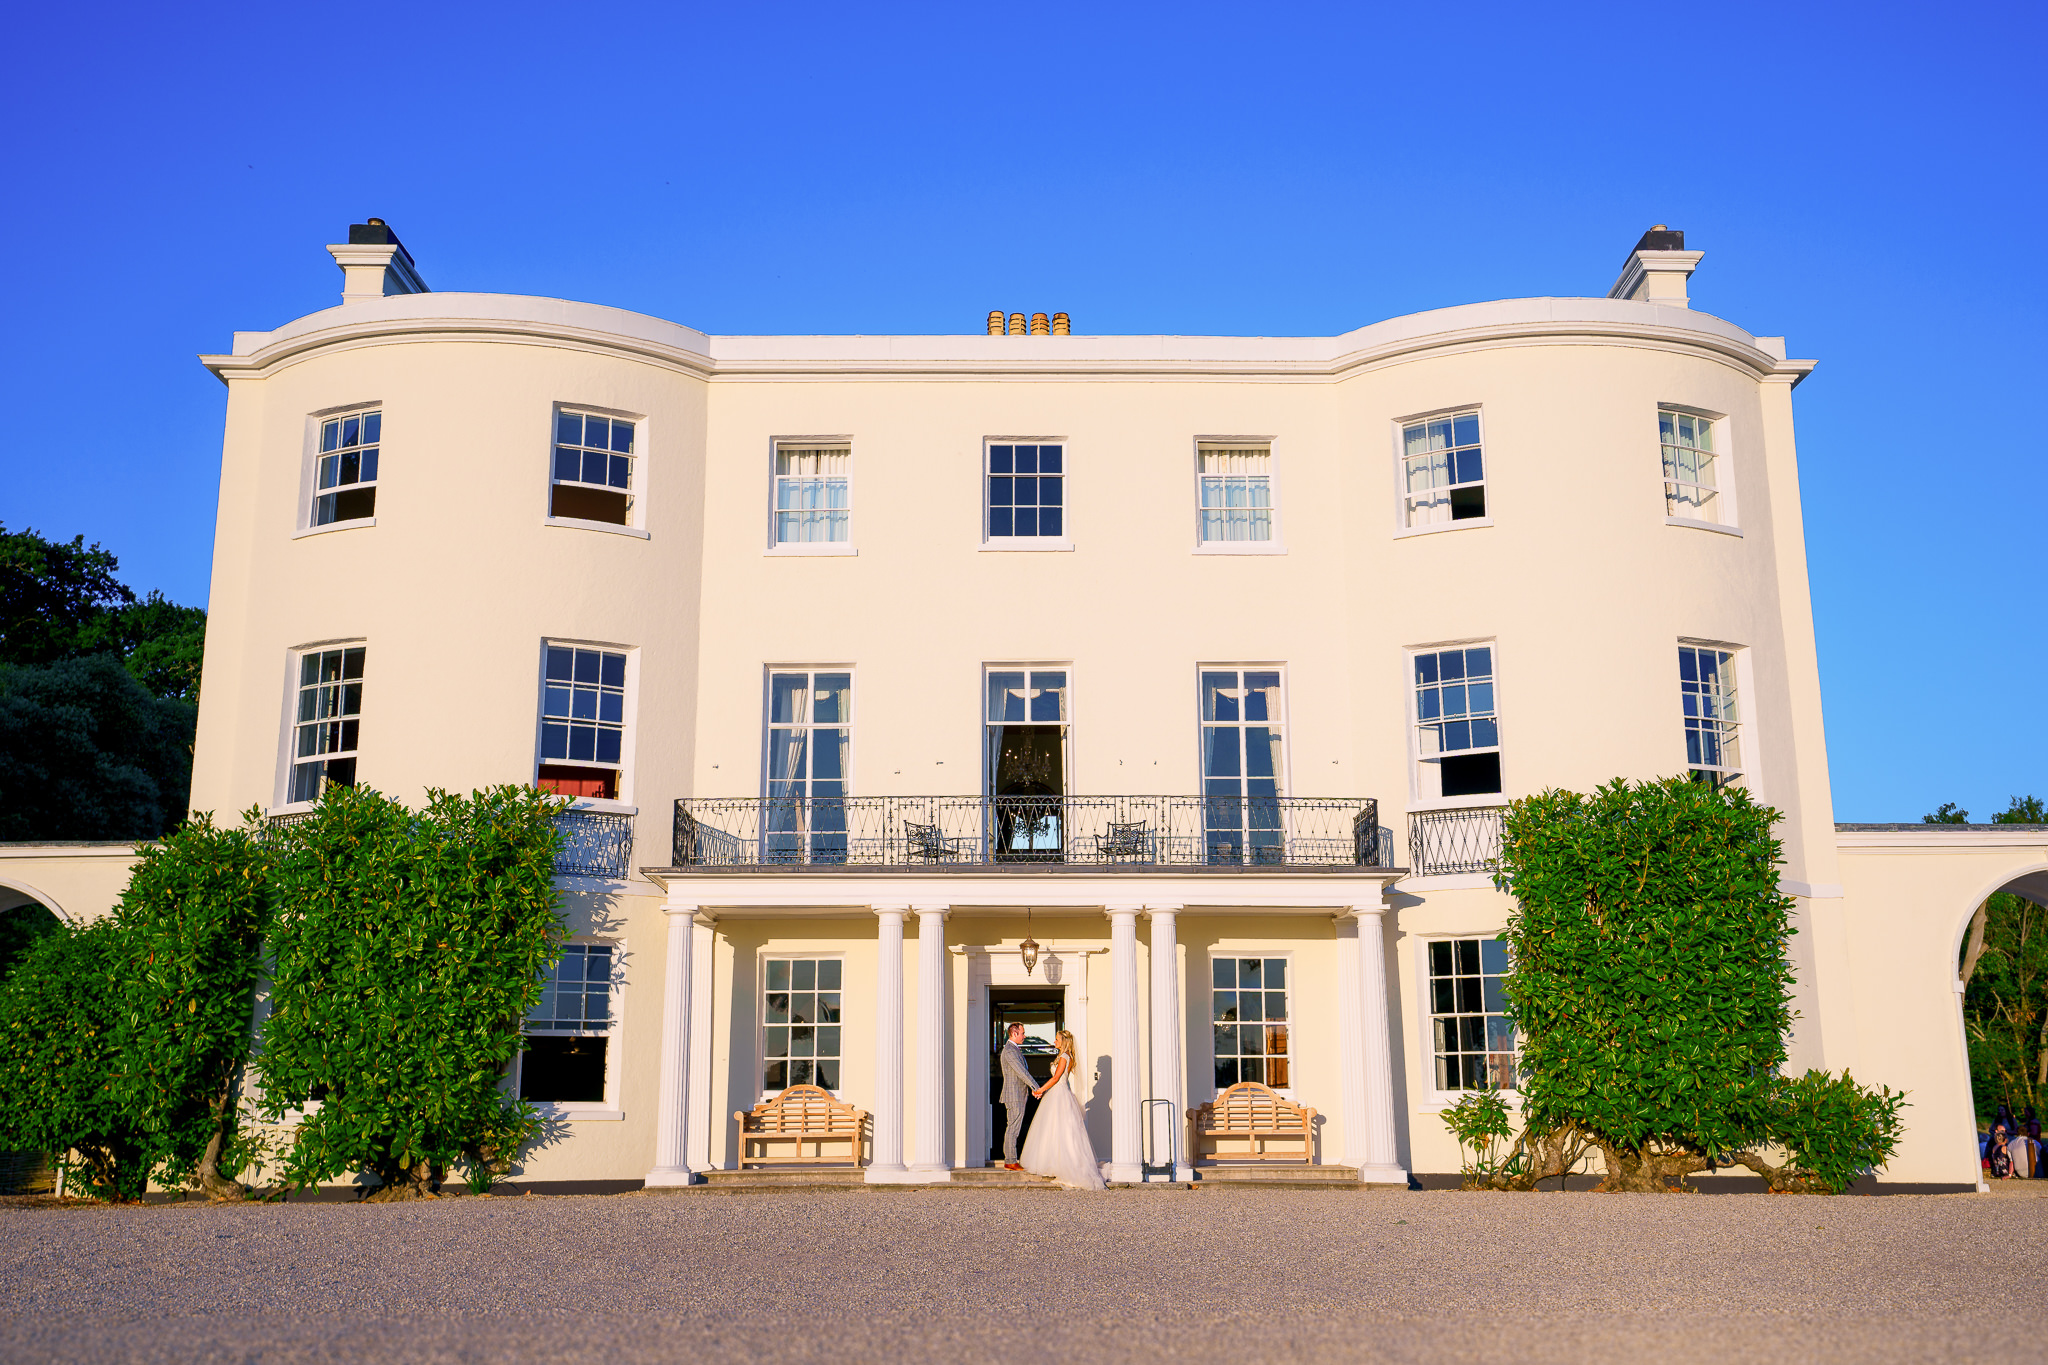 The Beautiful bride and groom at the Wedding venue Rockbeare Manor in Exeter Devon by Somerset wedding photographer Spencer White Photography